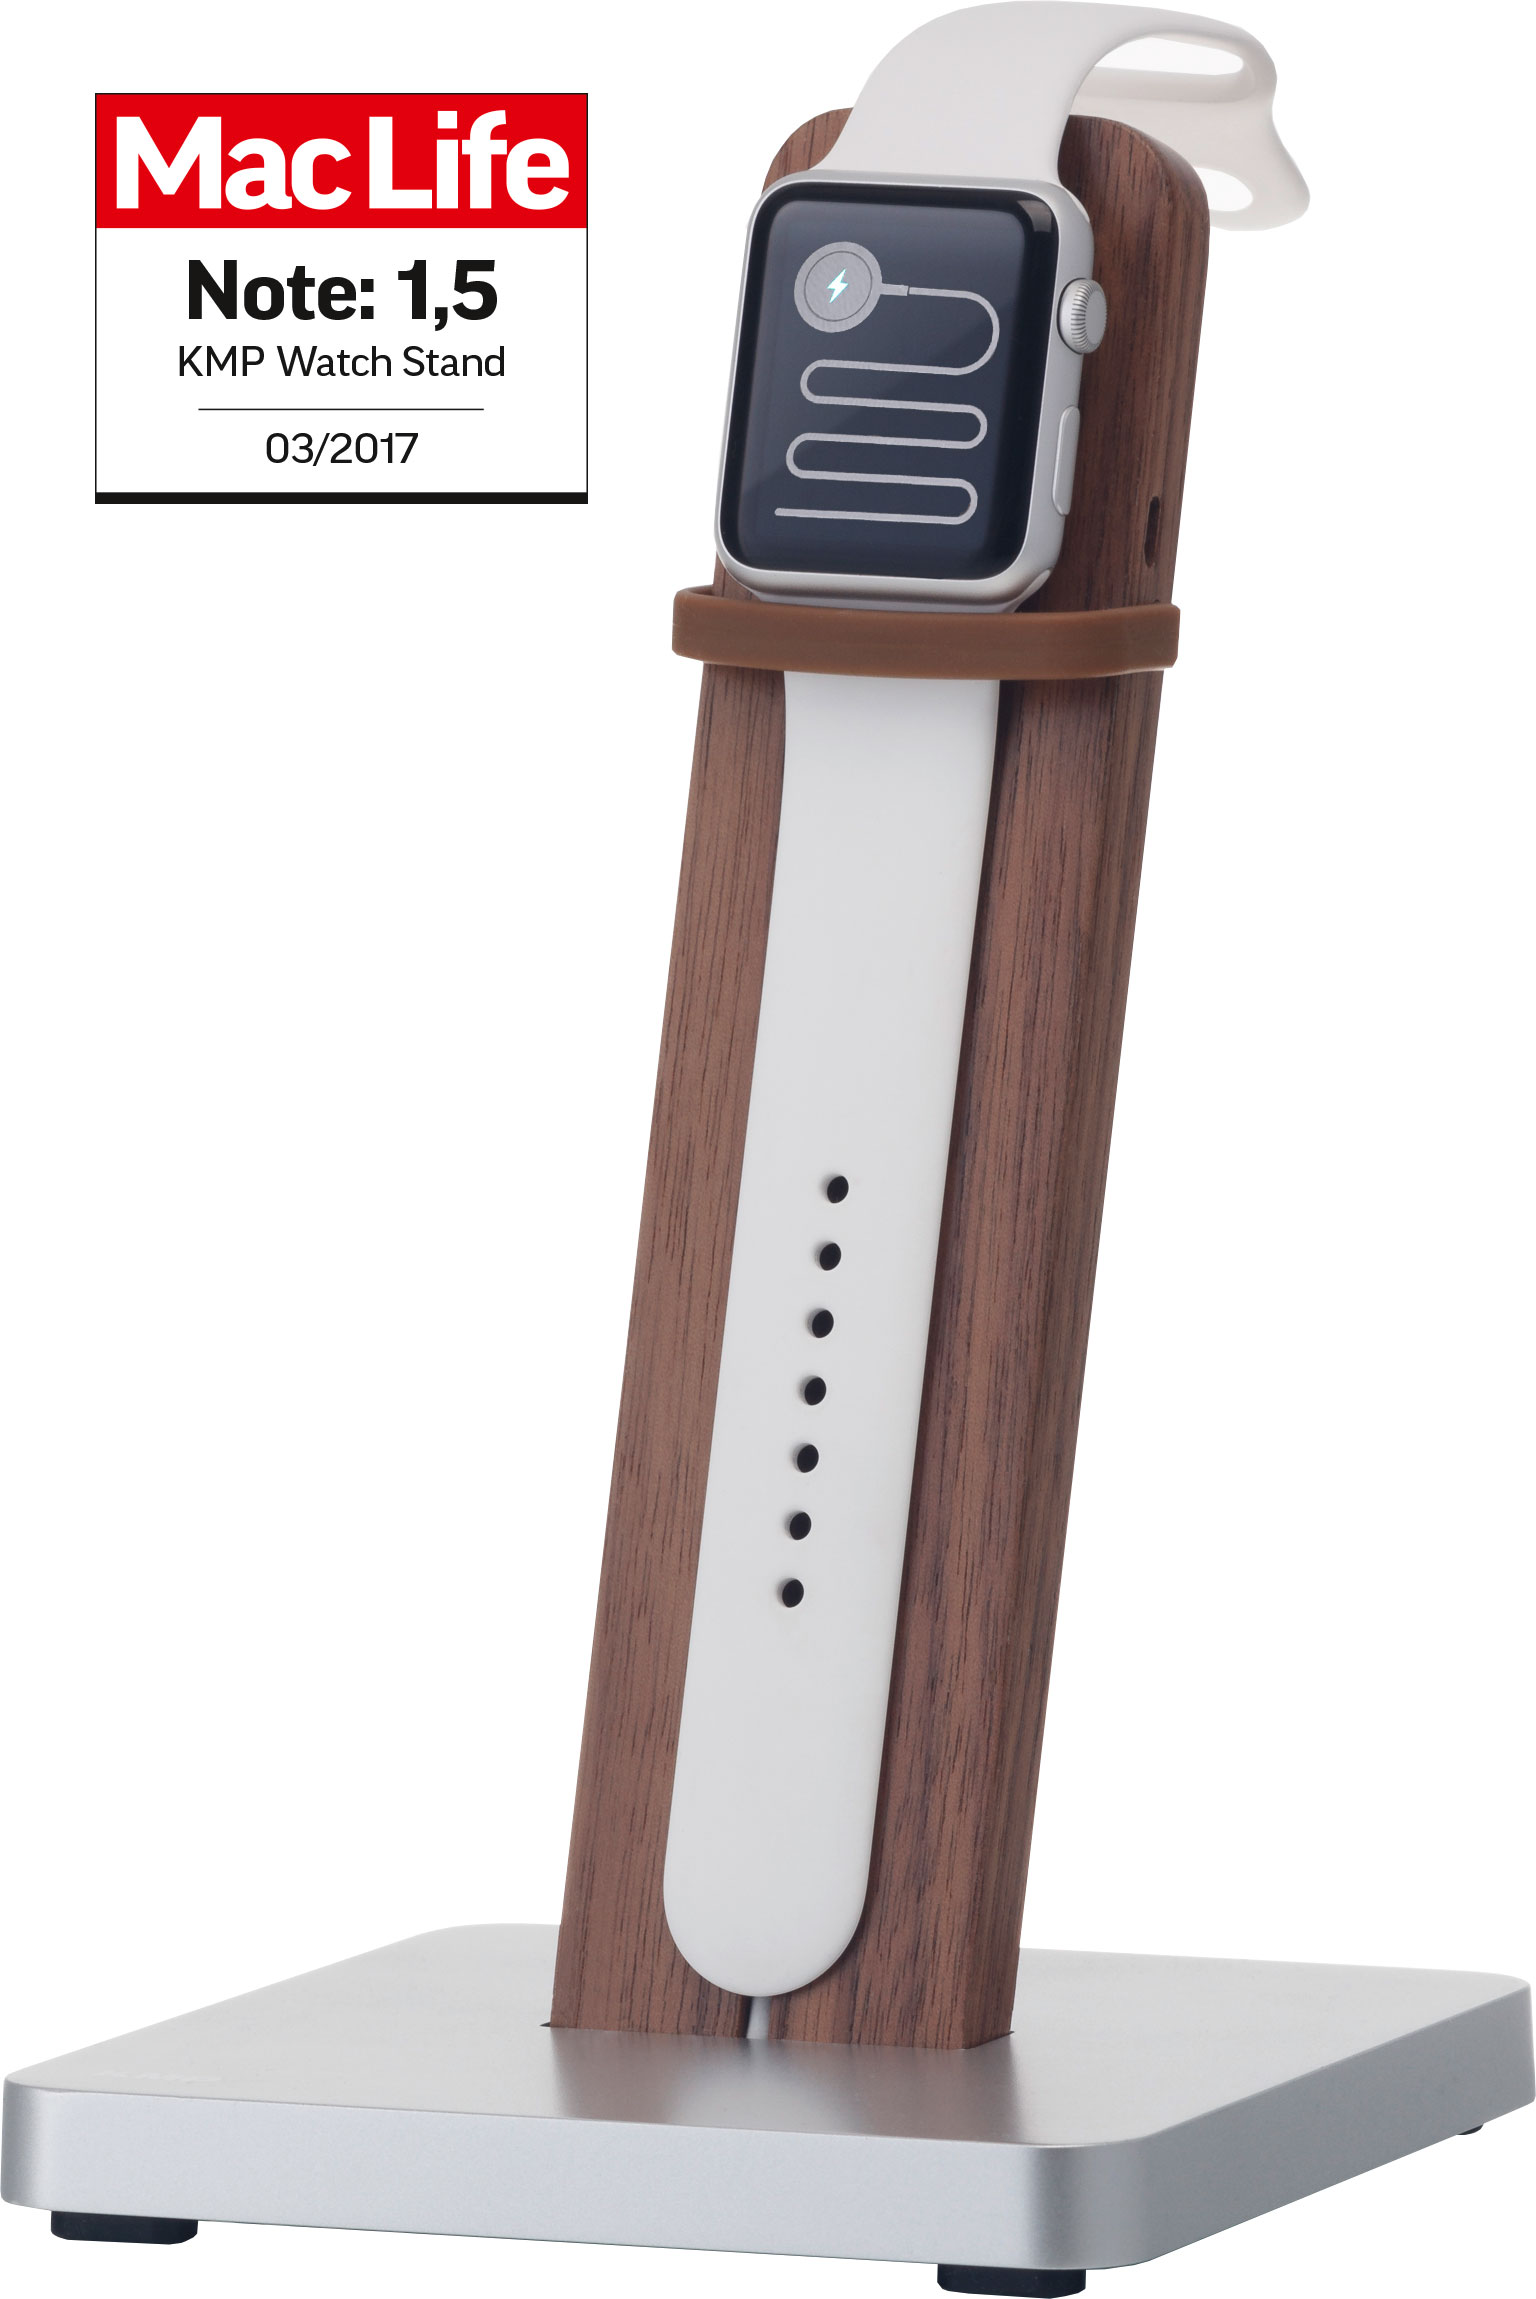 KMP Smartwatch Ständer für Apple Watch Walnuss / walnut